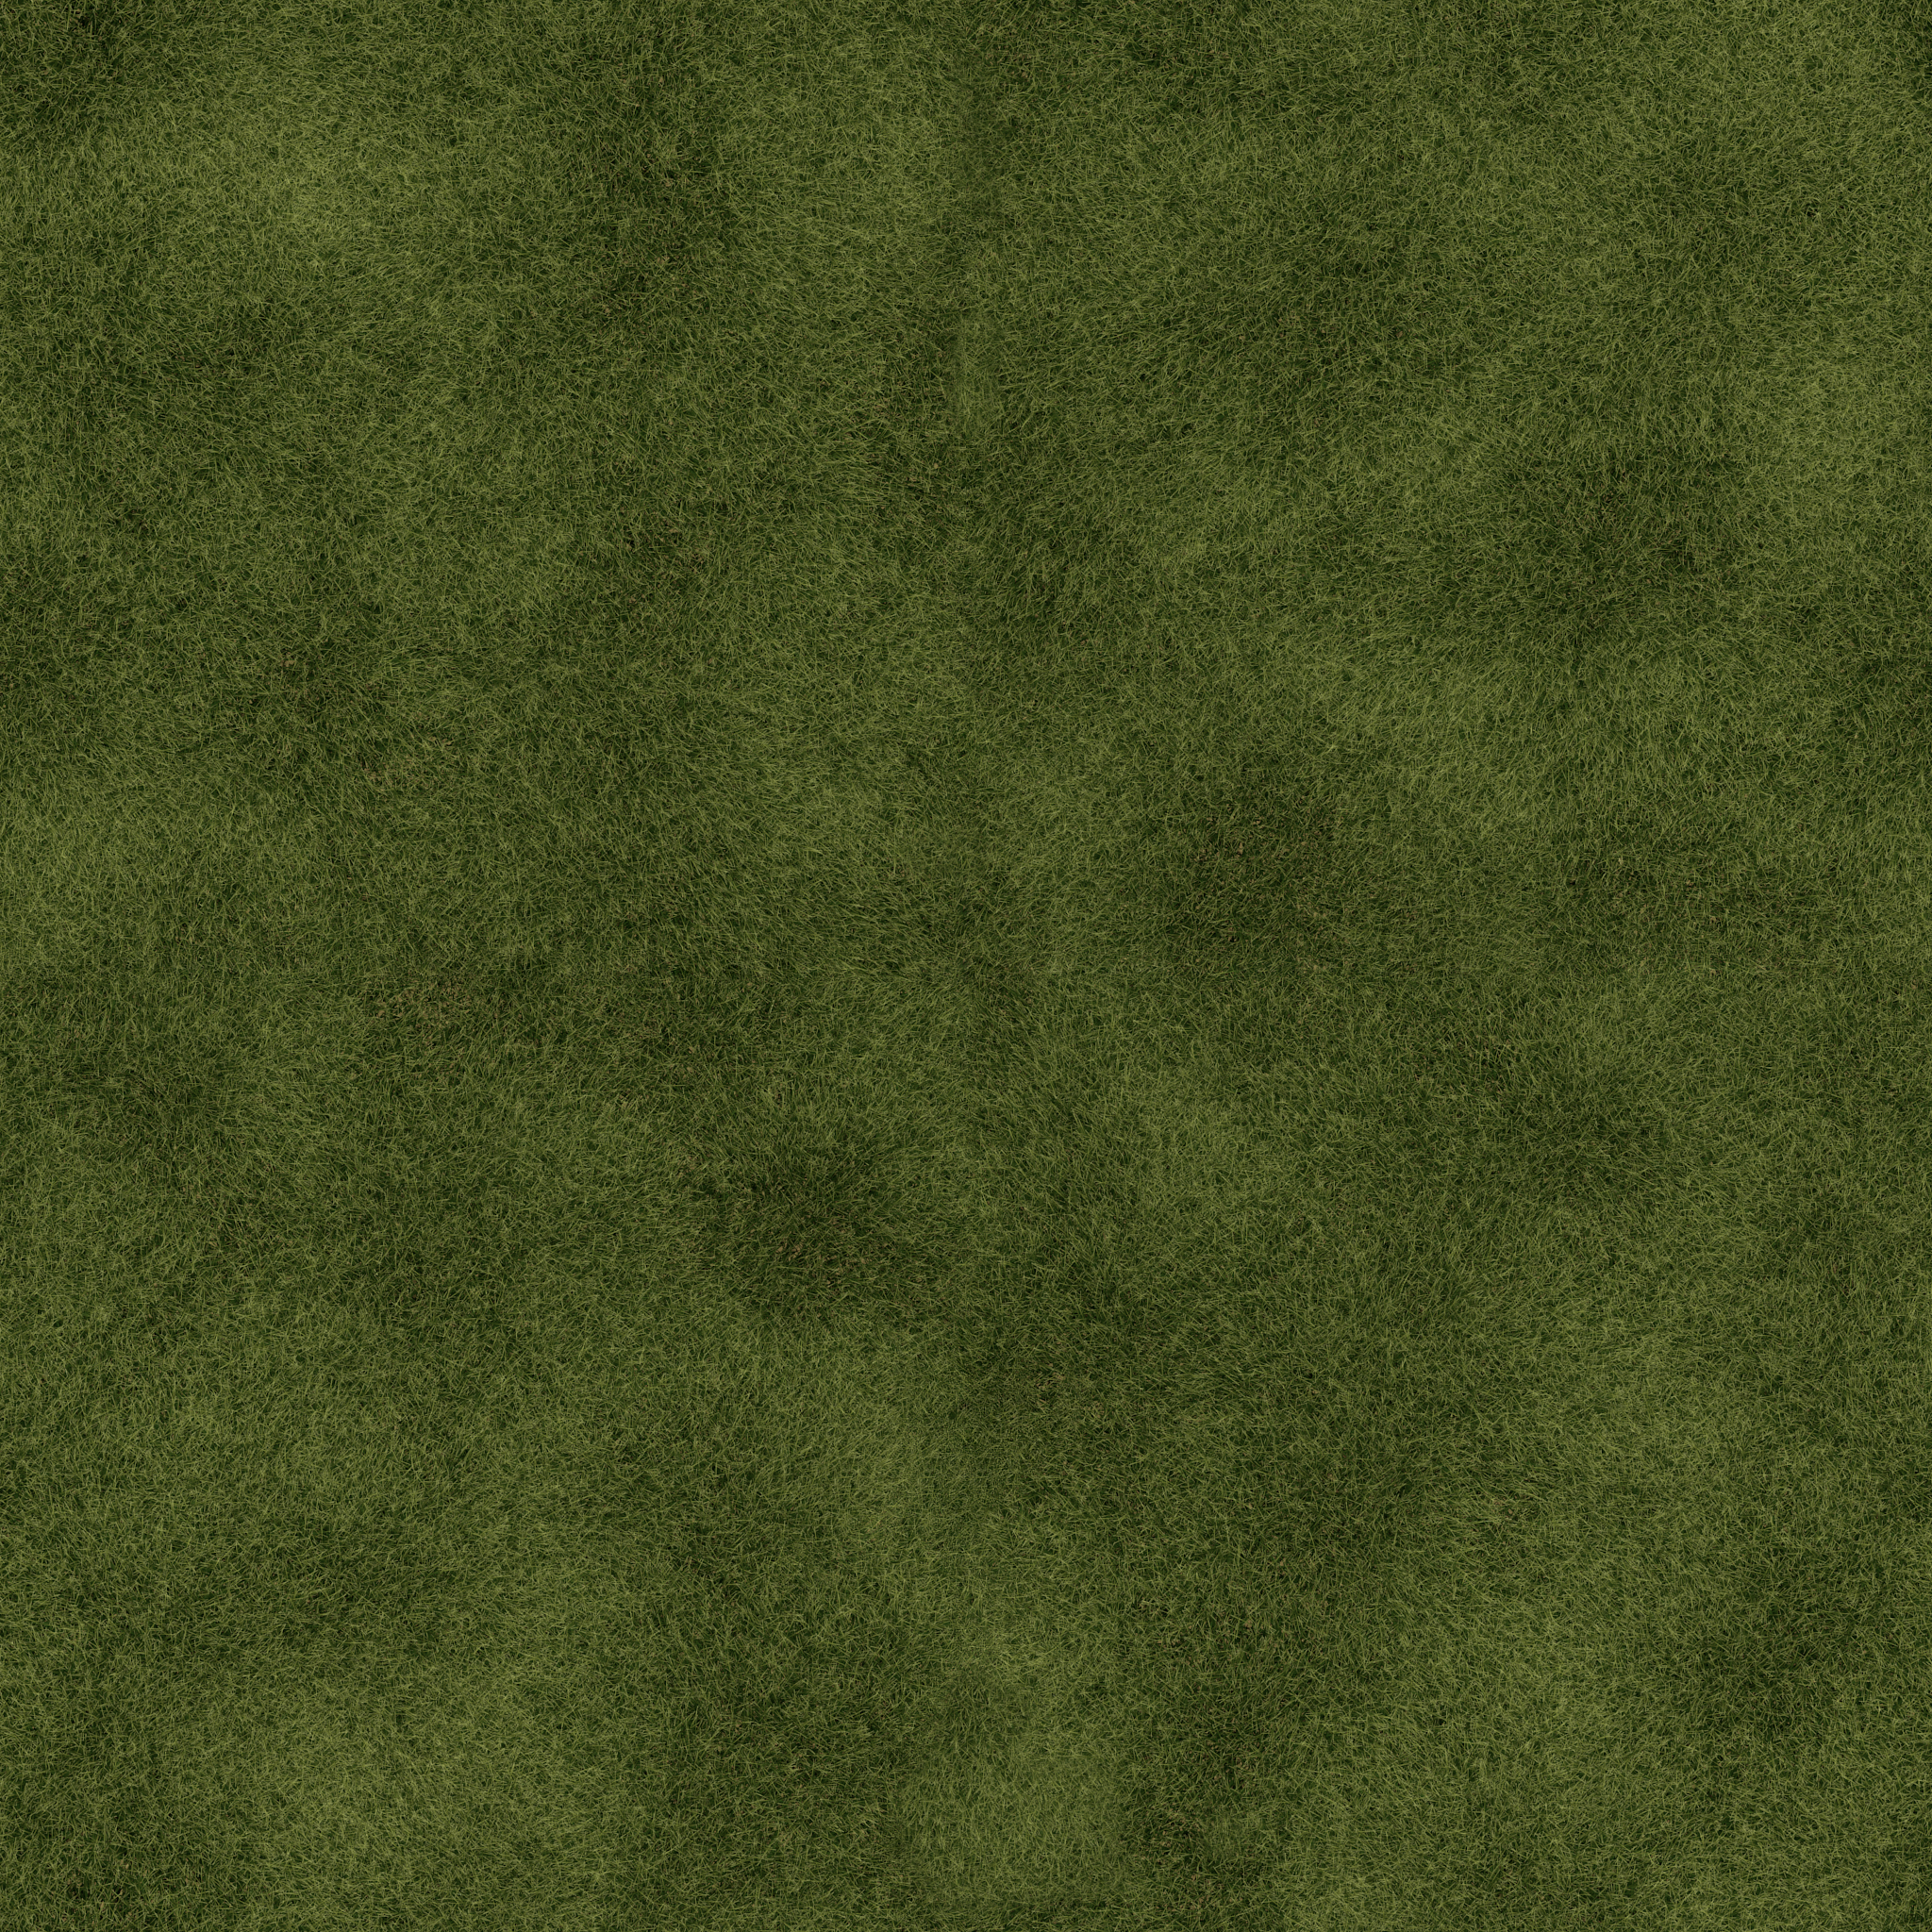 Grass Texture Tileable 2048x2048 by FabooGuy on DeviantArt